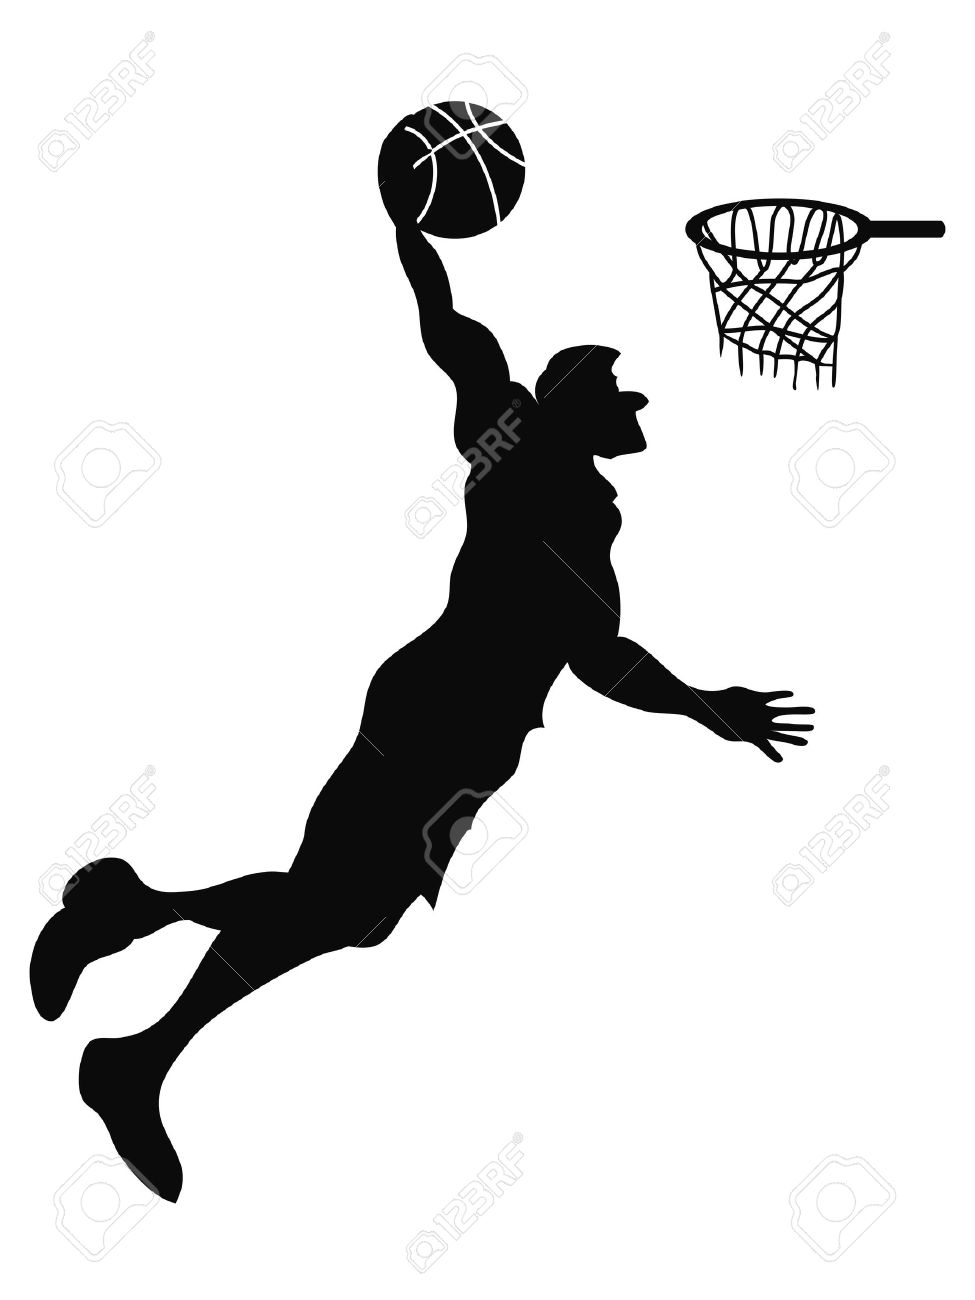 isolated the silhouette of Basketball player Slam Dunk from white